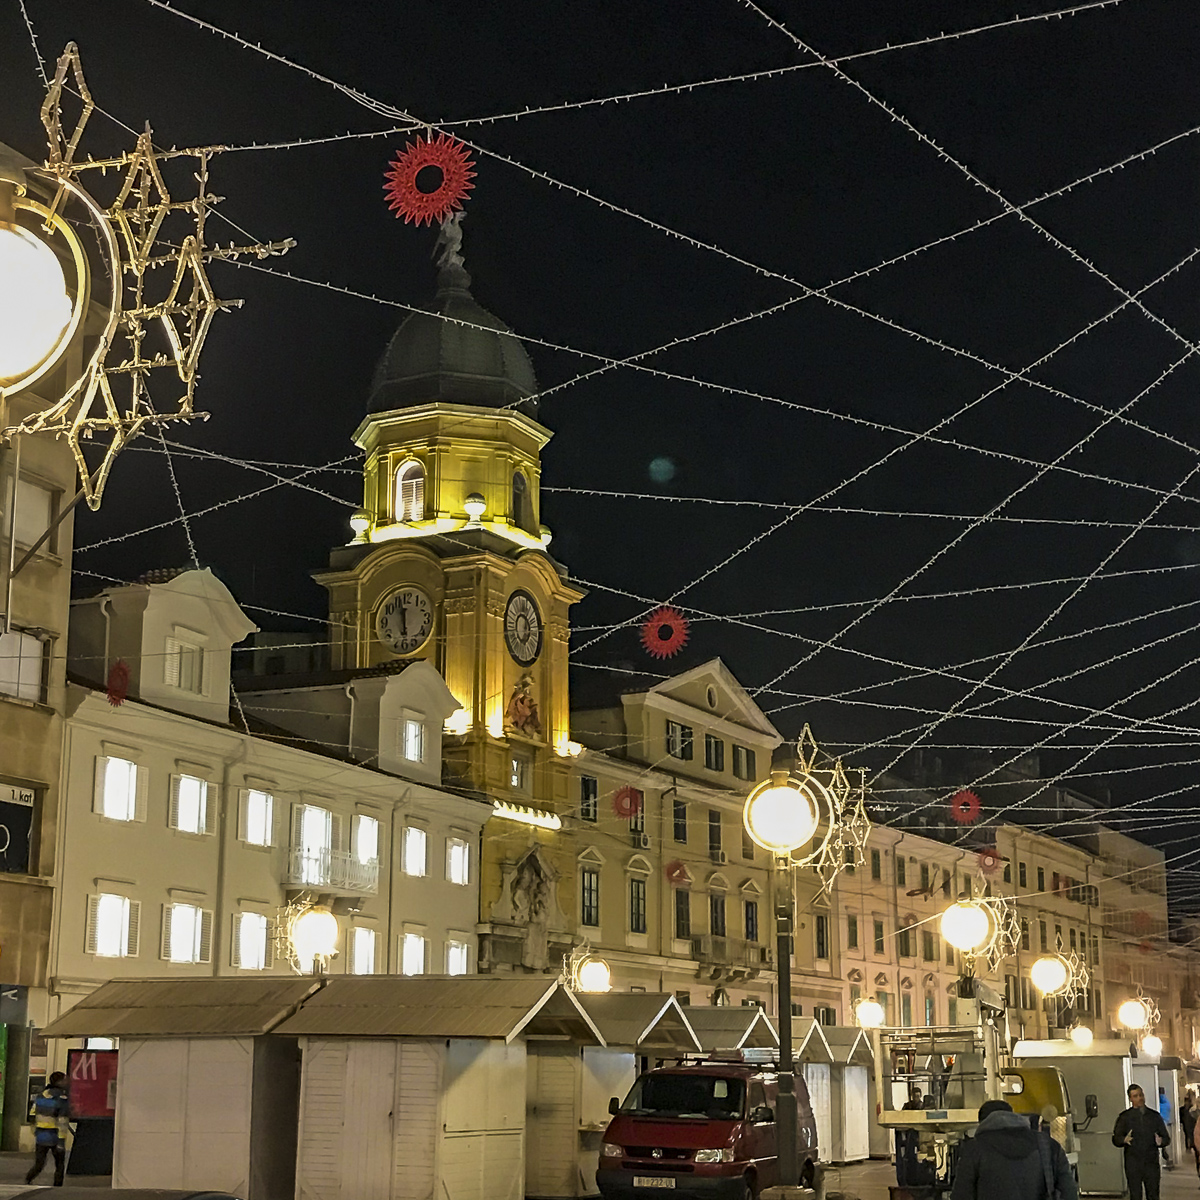 Christmas market in Rijeka: distance between the stands should be bigger